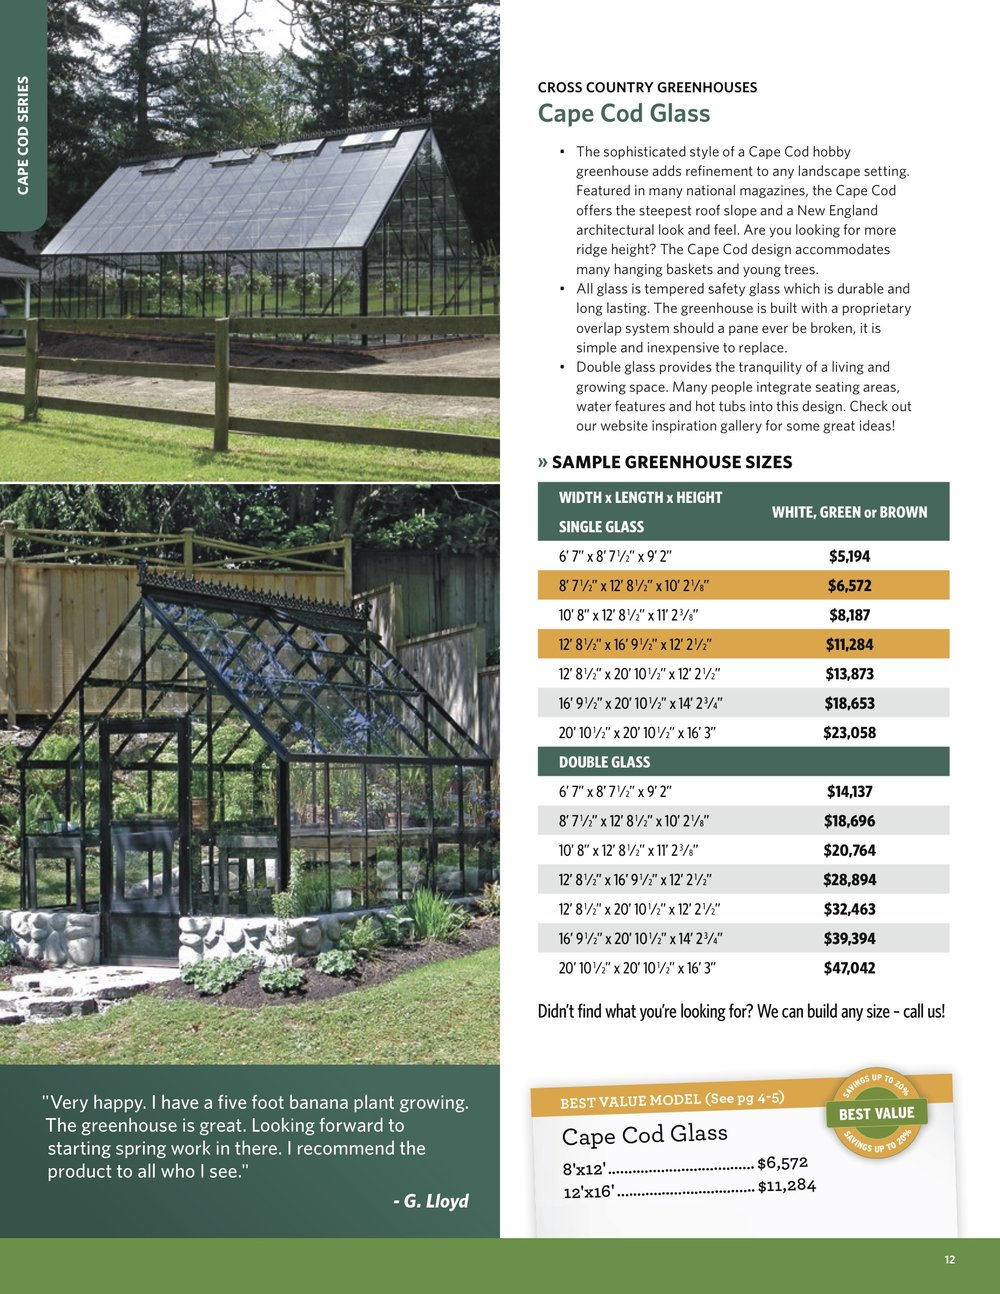 111552_Wisconsin Greenhouse Company_National Catalog (4) (dragged) 11.jpeg